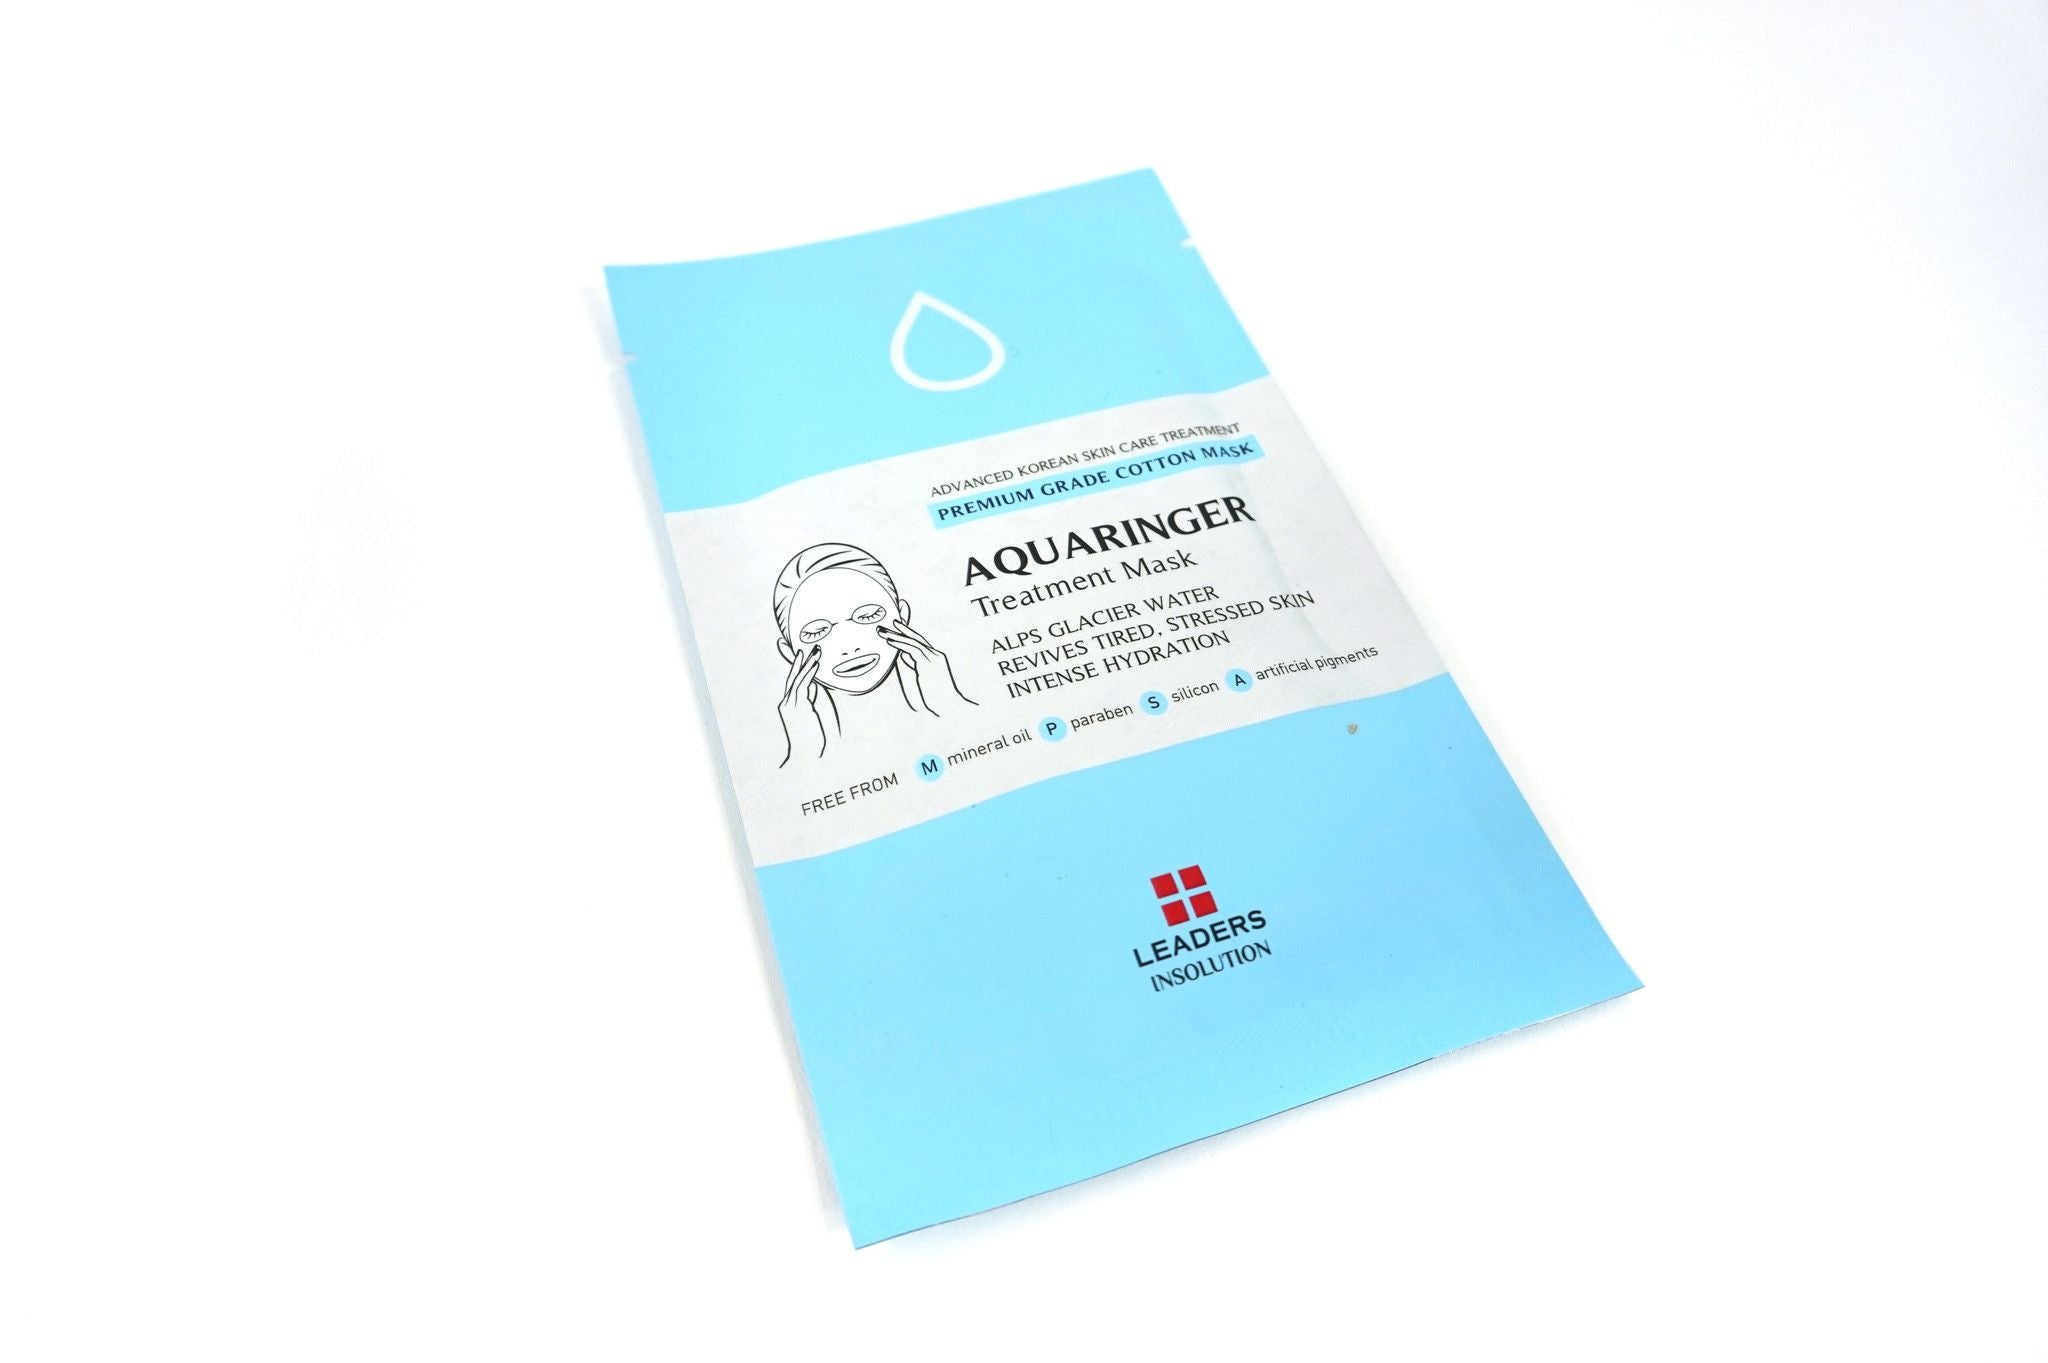 AQUARINGER TREATMENT MASK